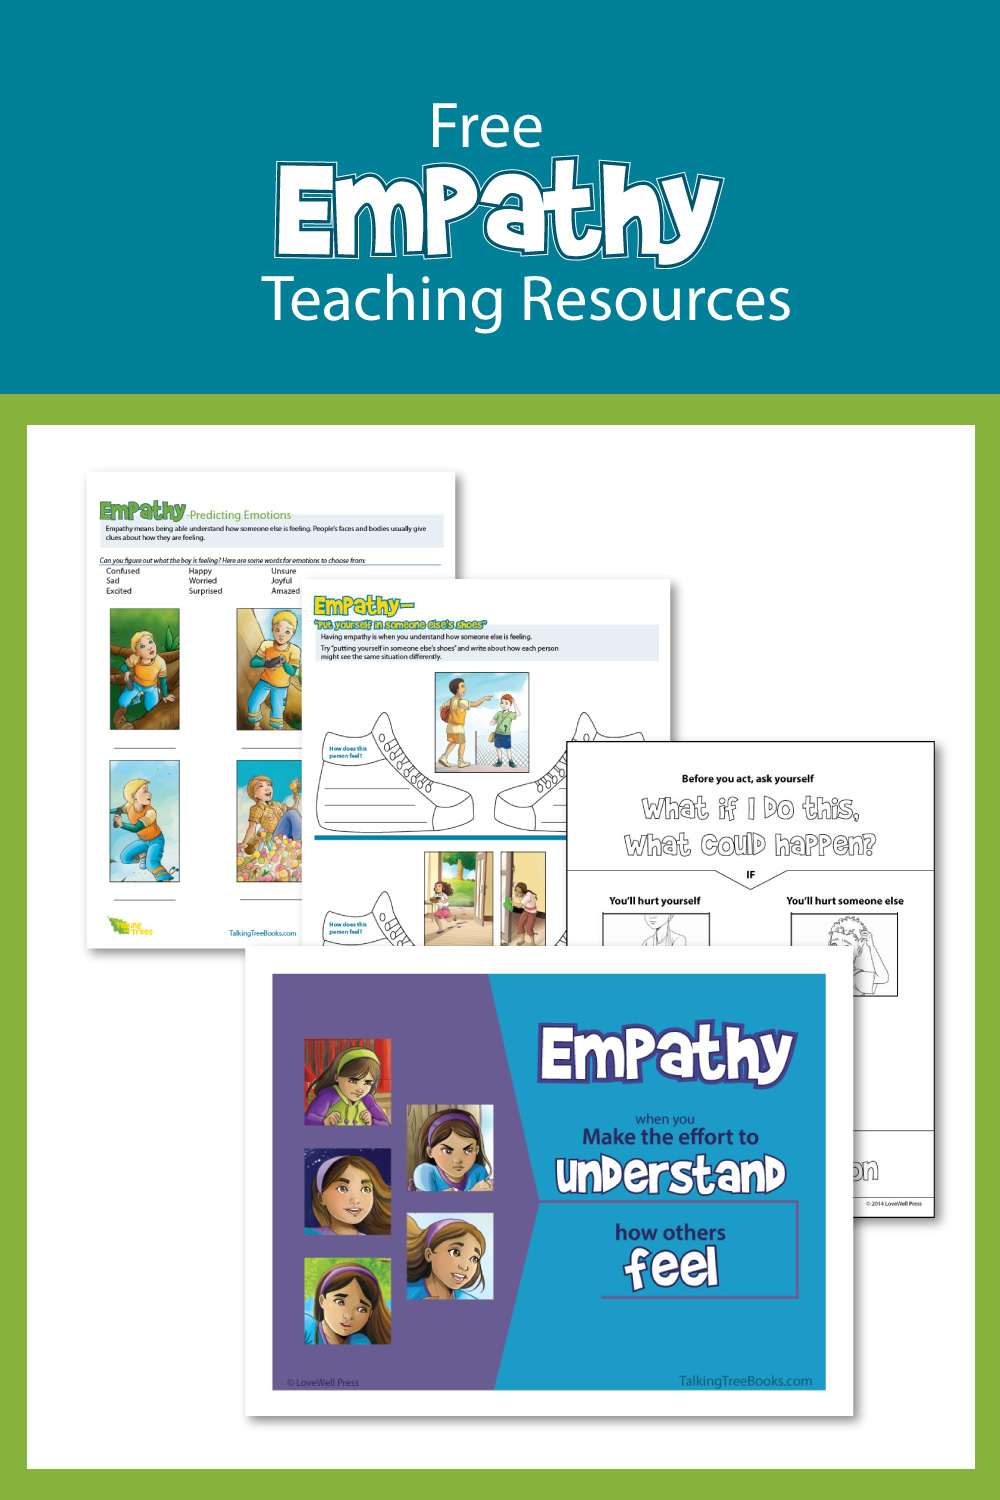 Empathy Teaching Resources